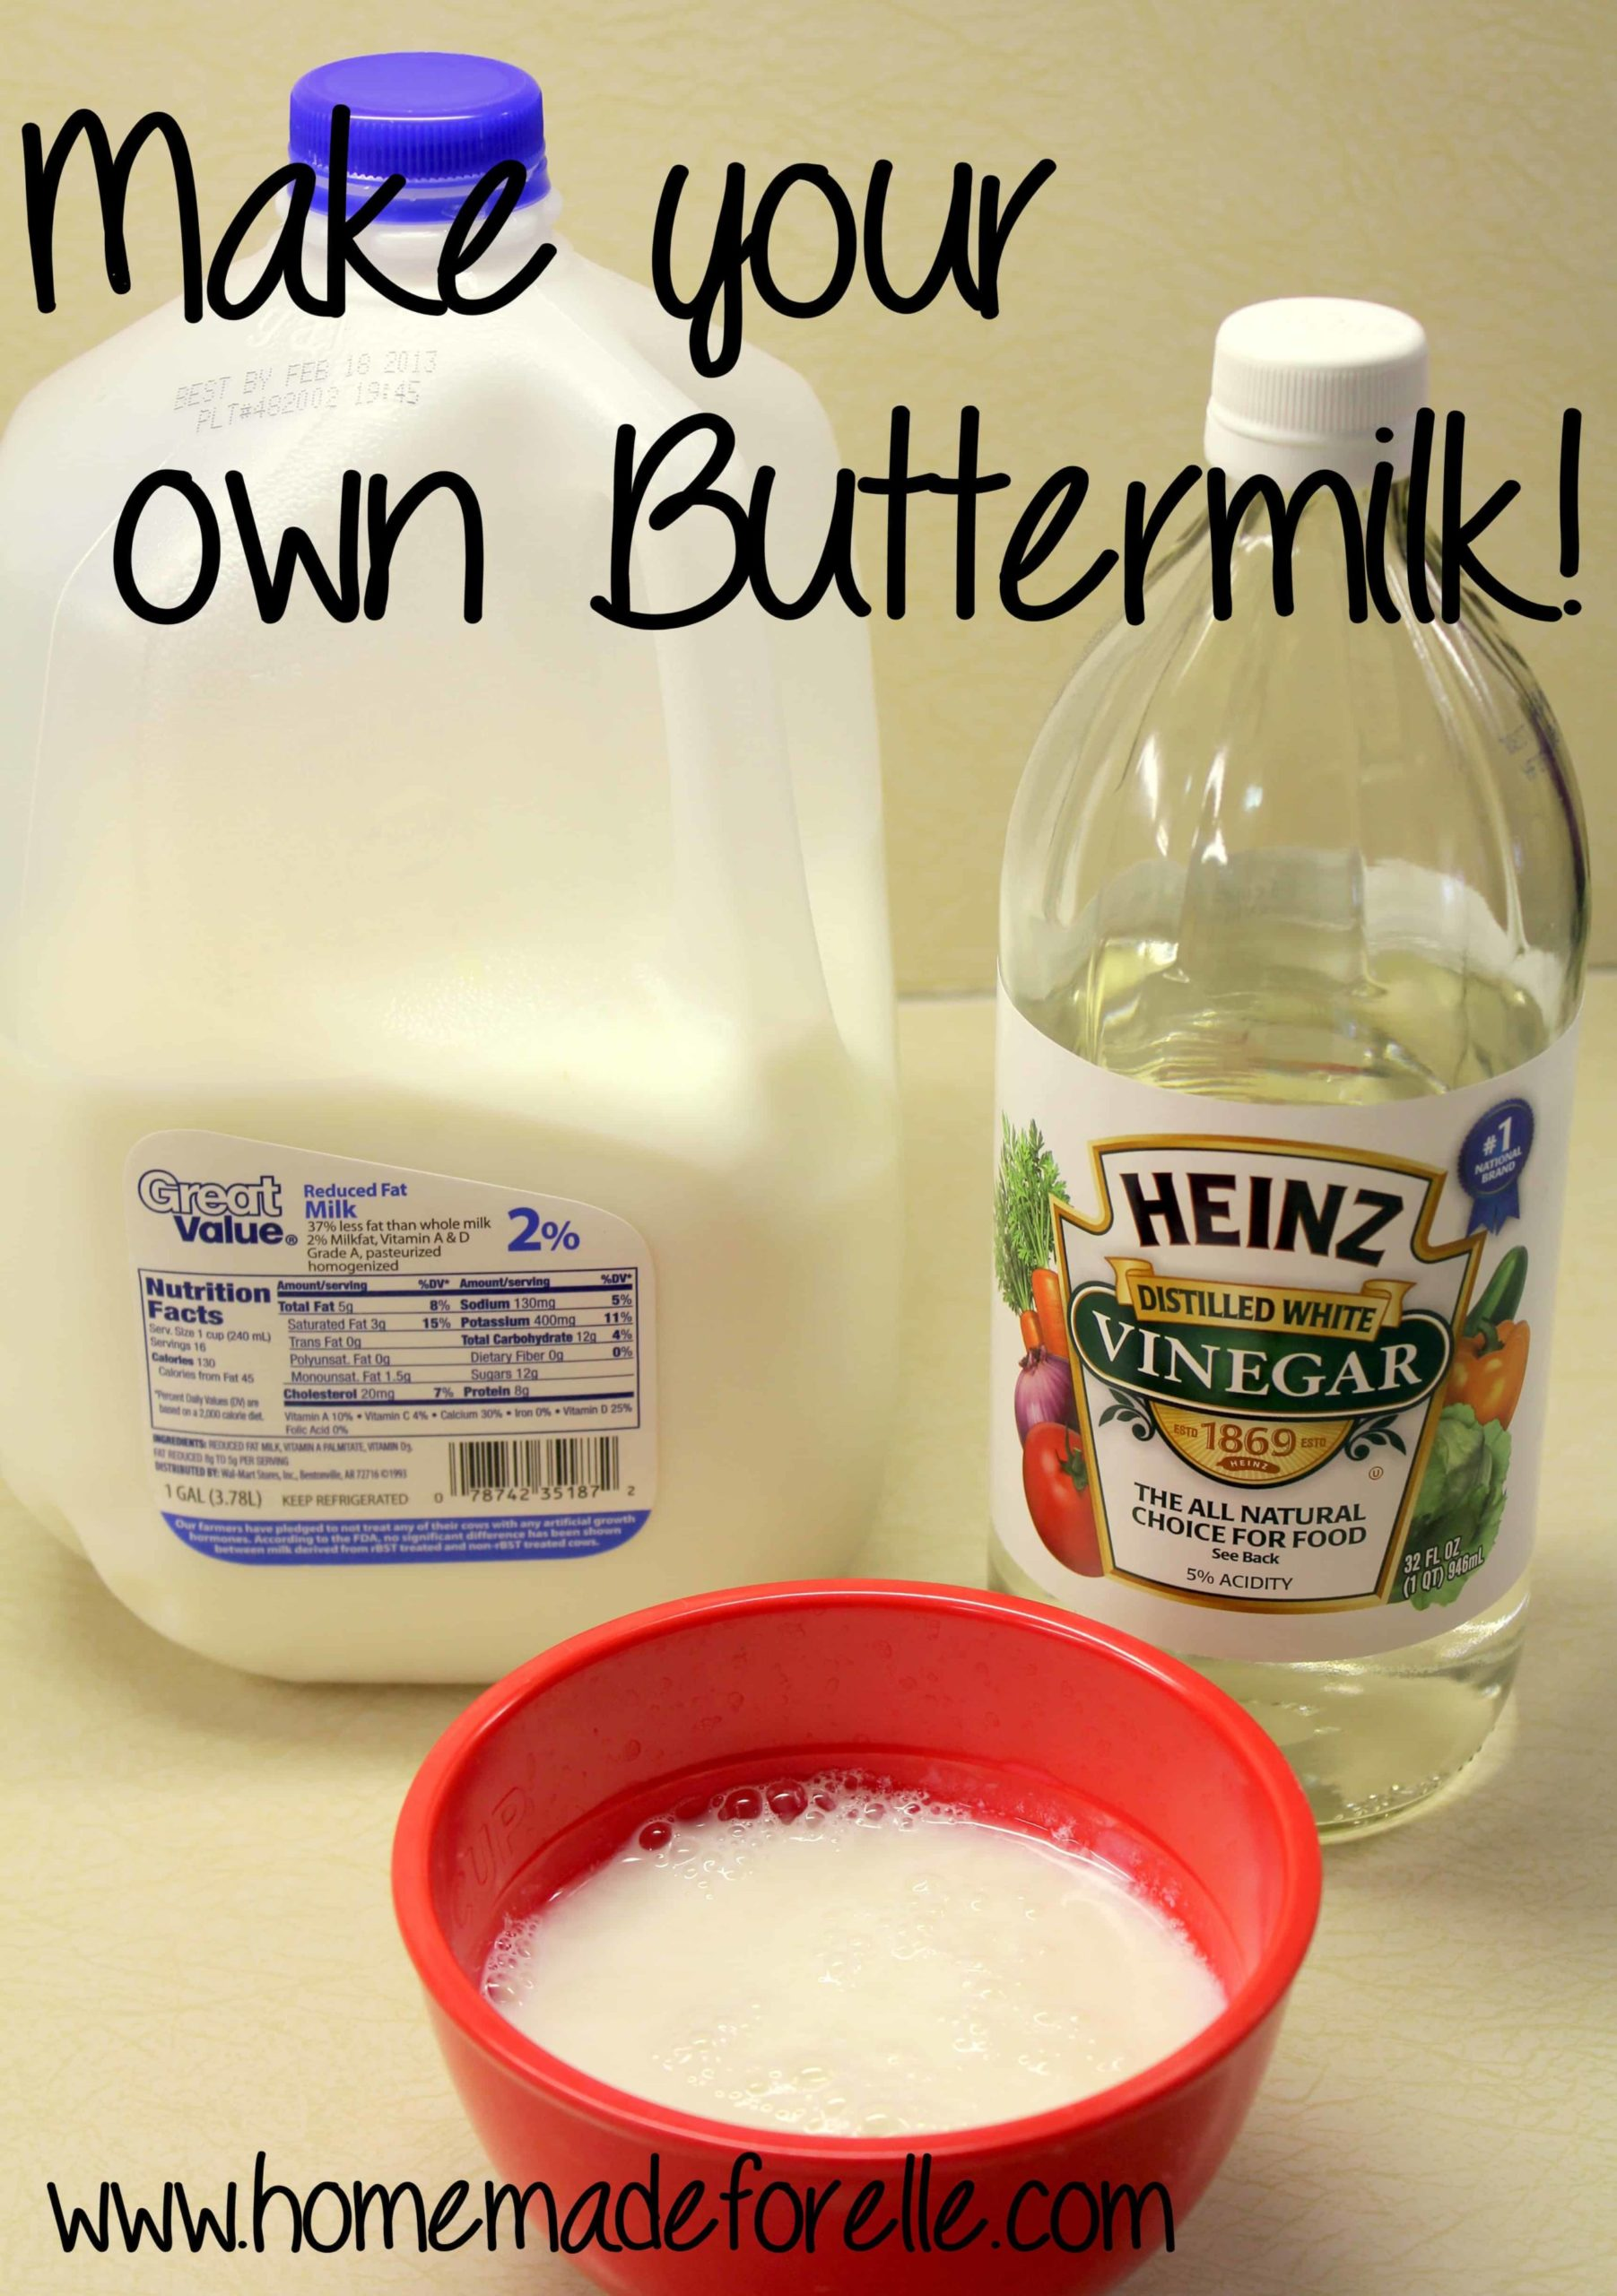 Make your own buttermilk